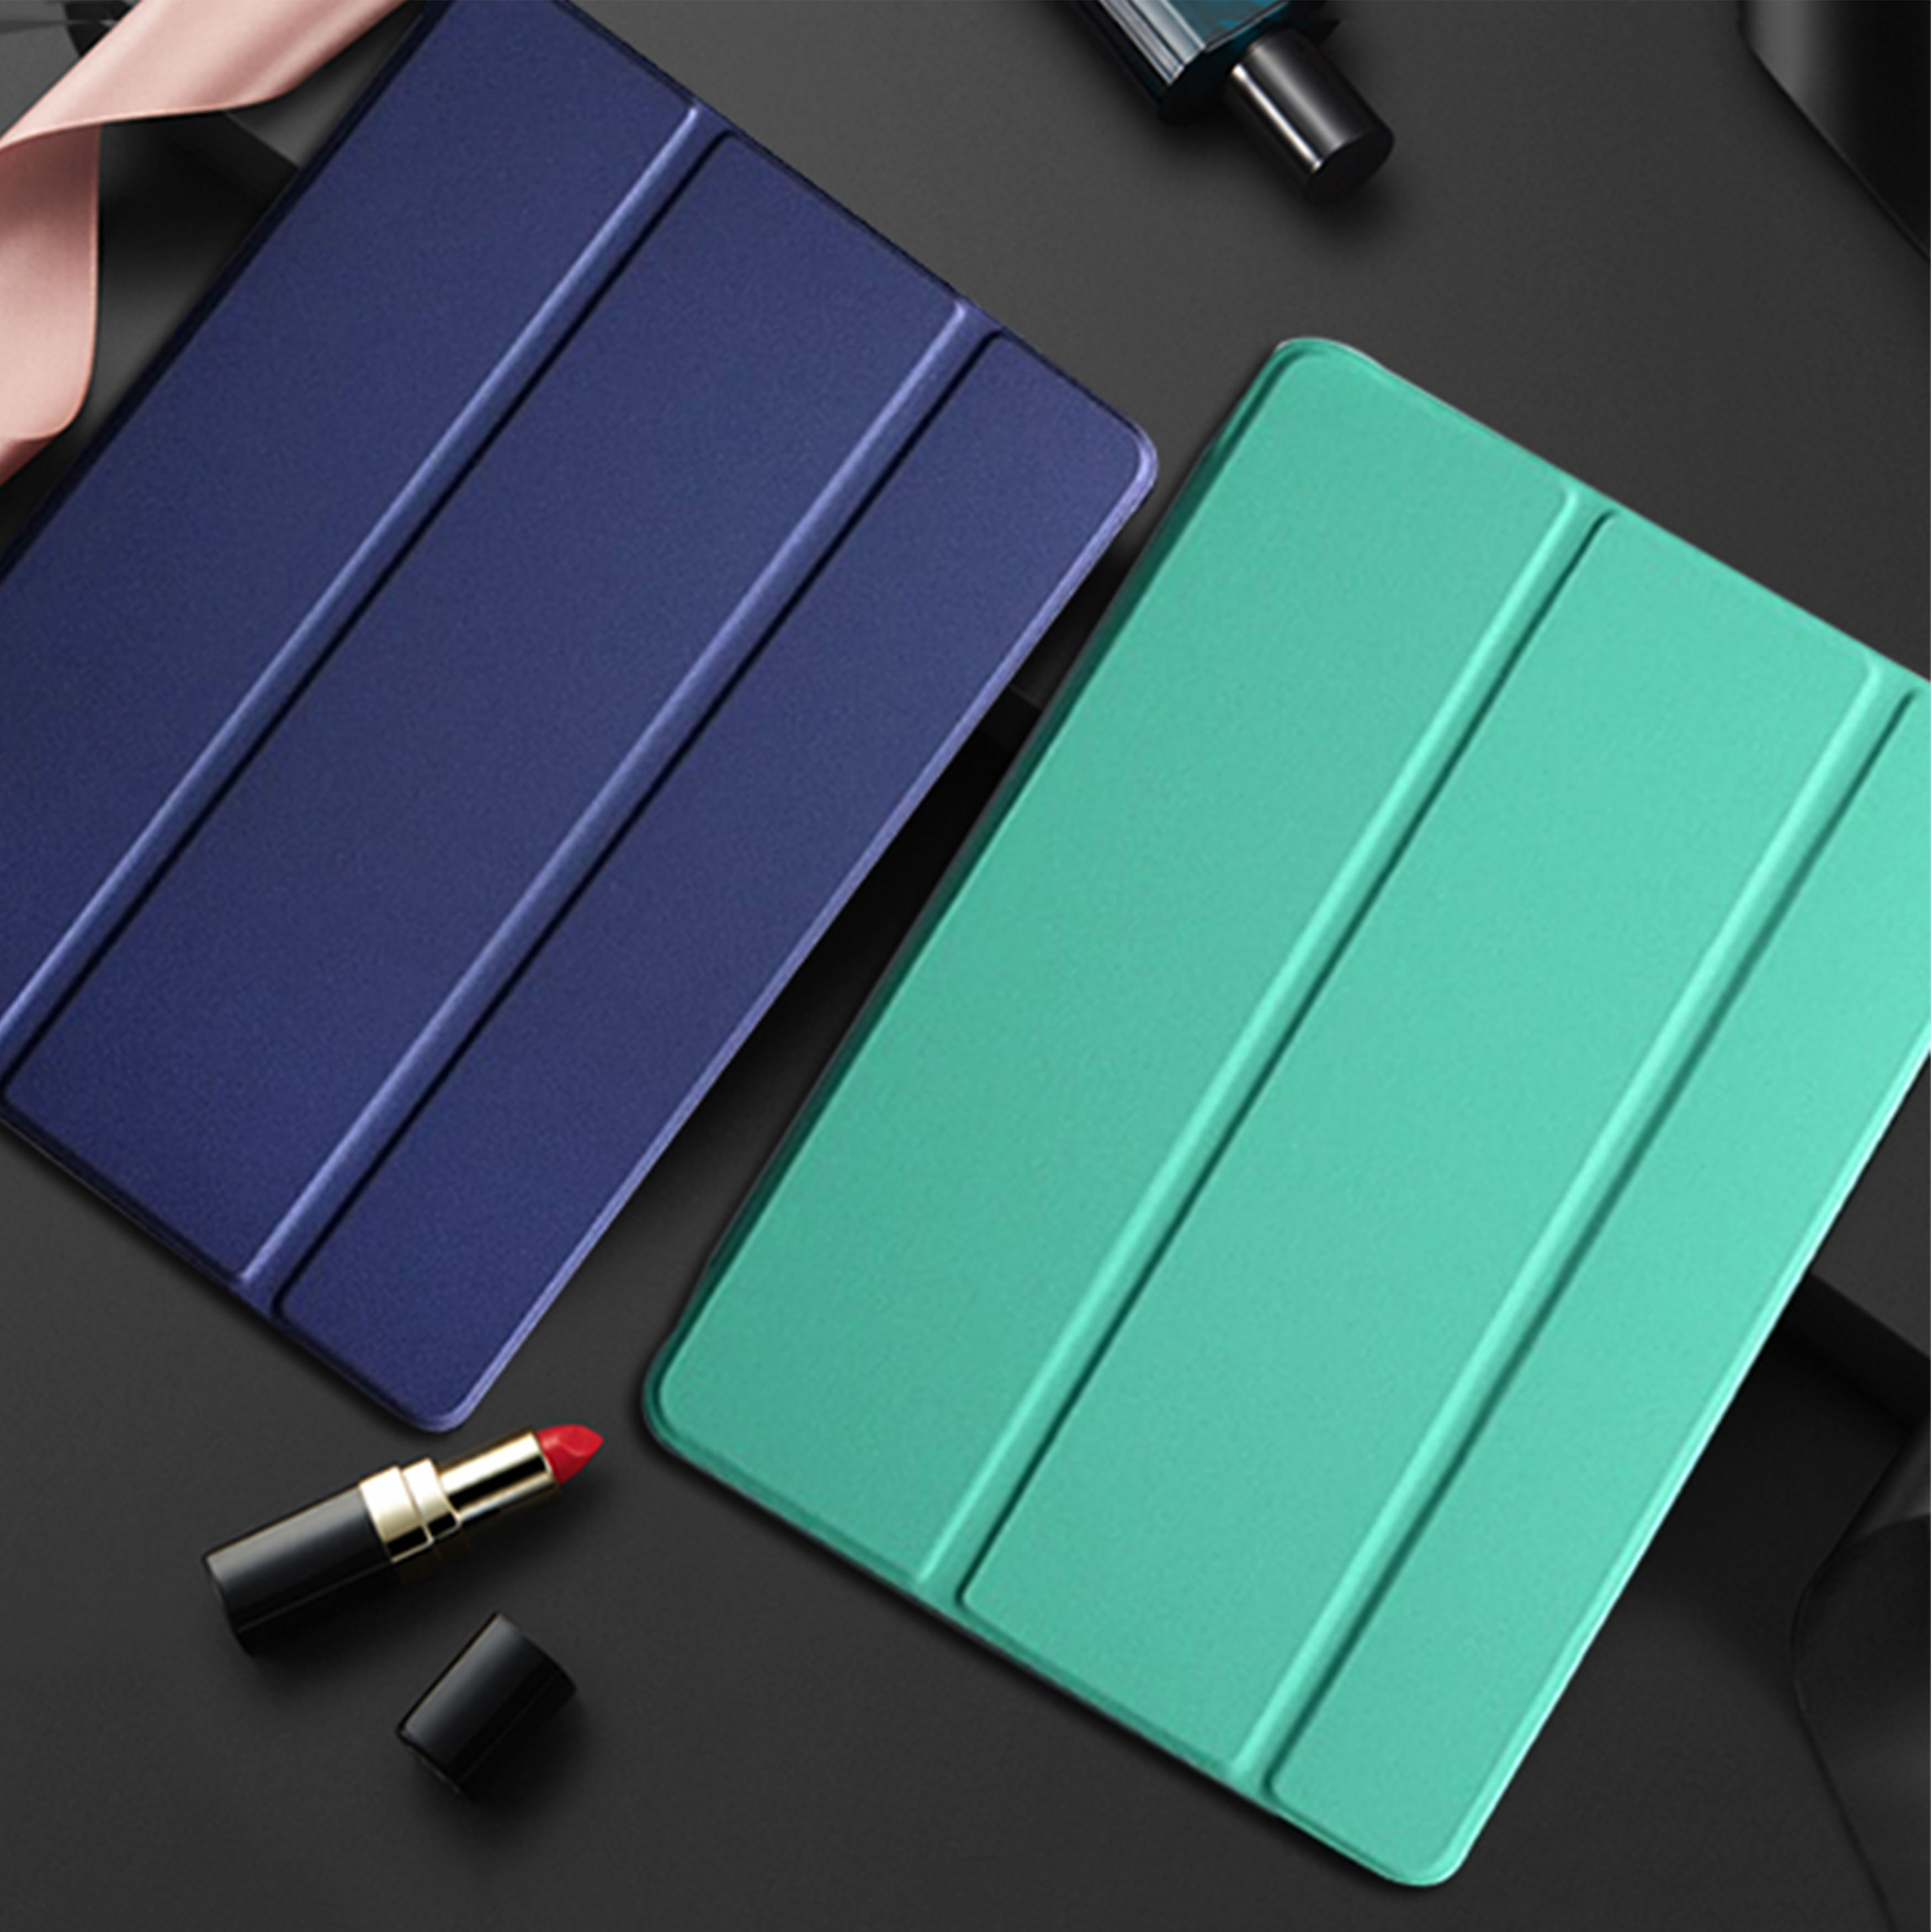 Case For Samsung Galaxy Tab S5e T720 T725 Cover PU Leather Smart Protect Shell For Galaxy Tab S5e 10.5 SM-T720 SM-T725 Coque